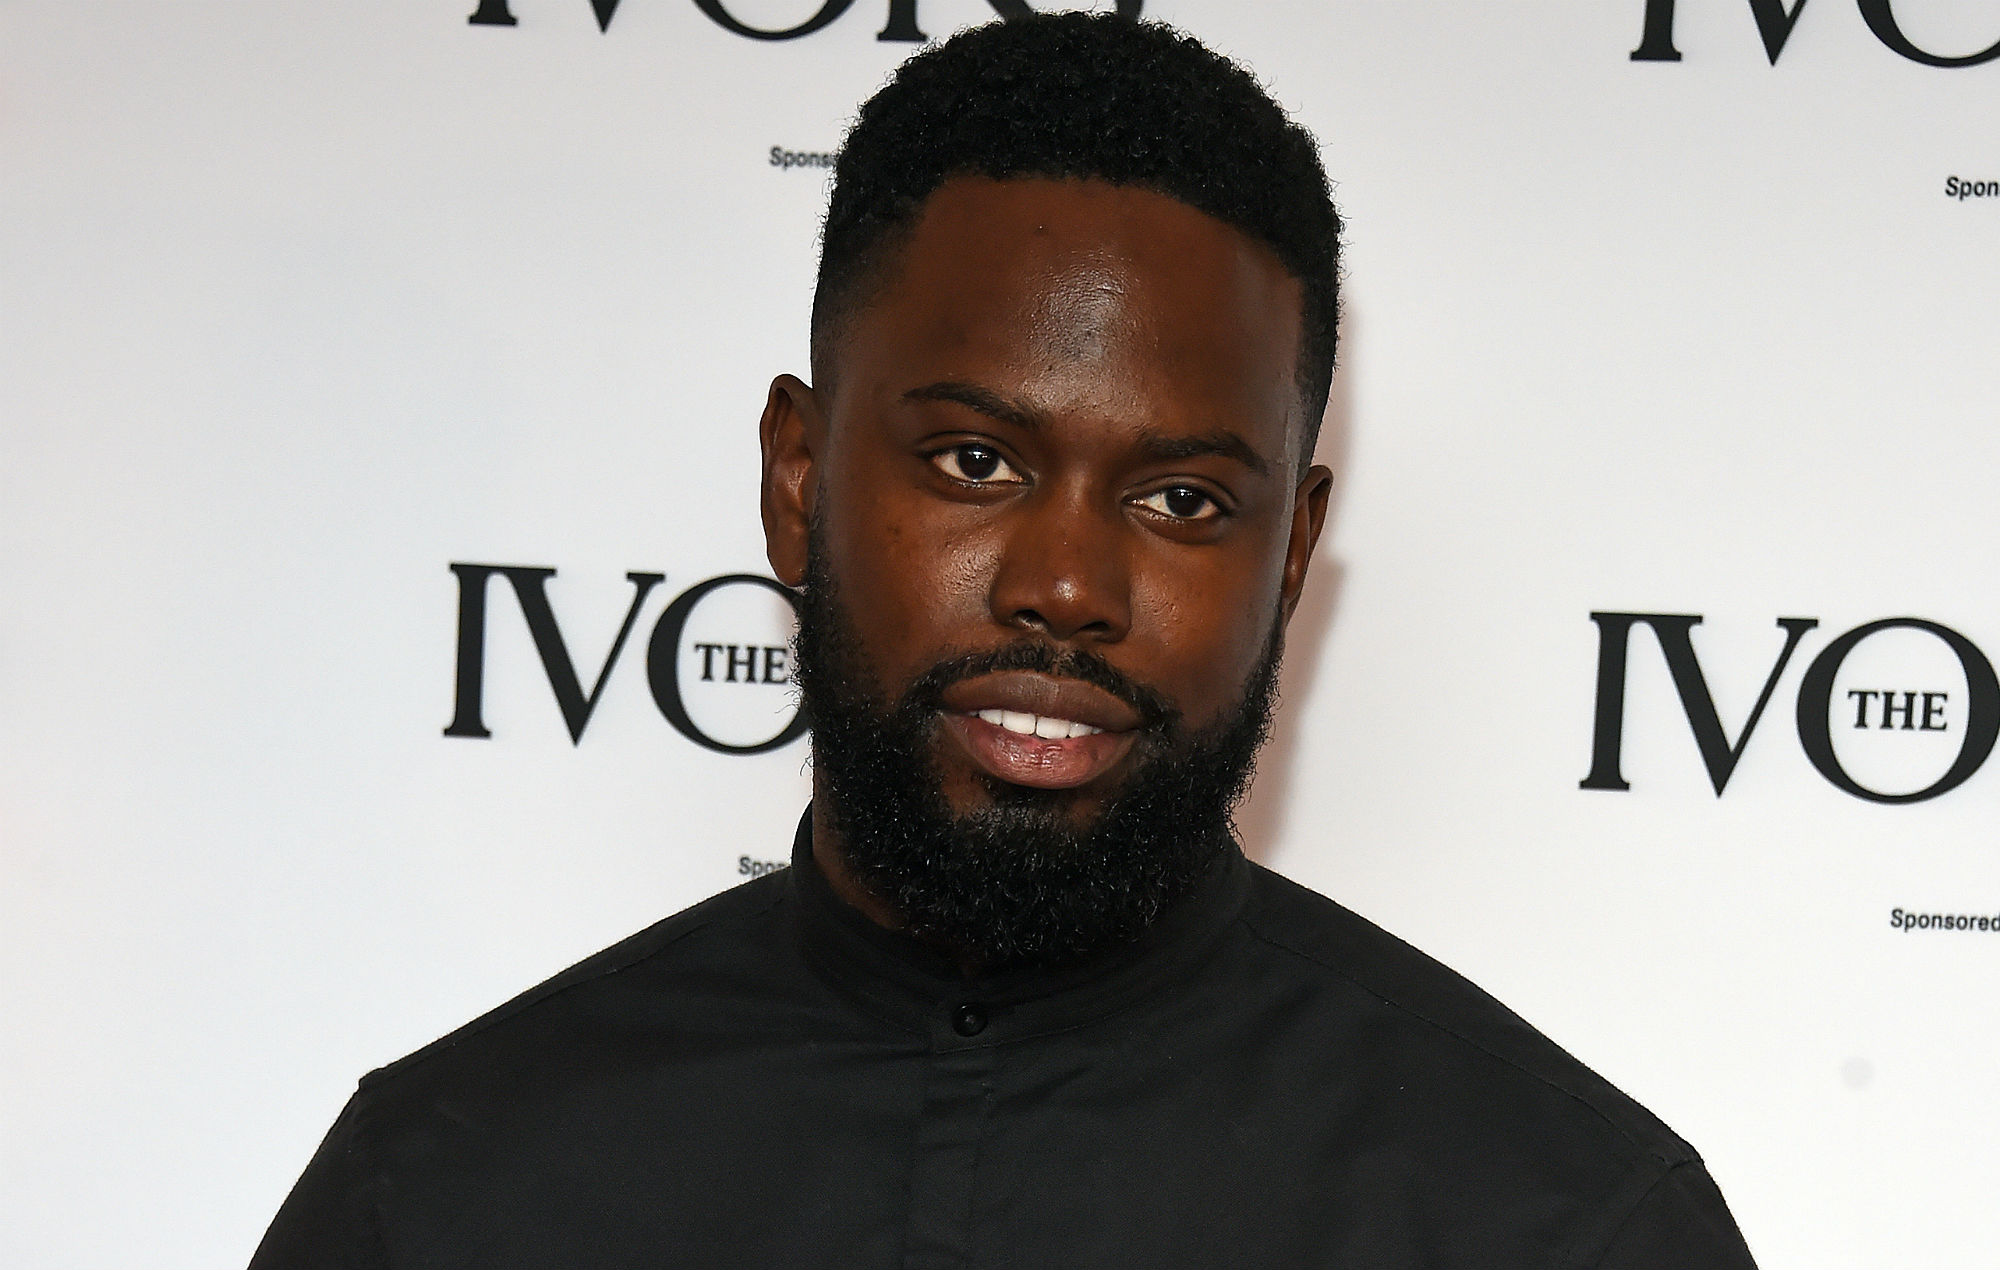 """Ghetts: """"There's a long way to go on the way black women are perceived, but culture is changing a lot"""""""